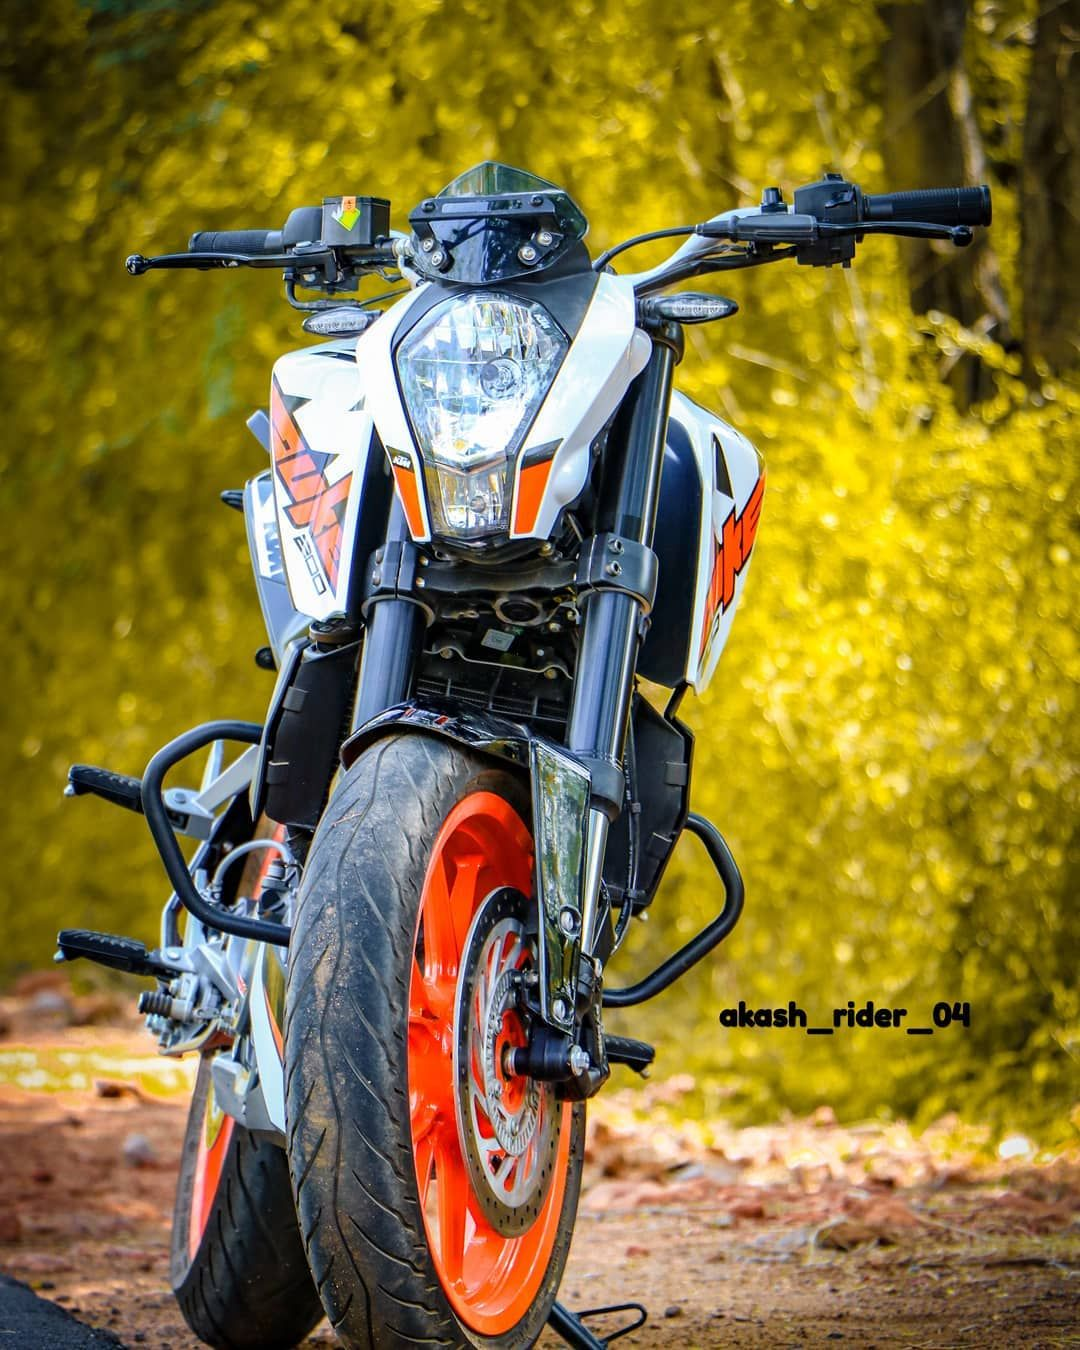 Babee Duke200 Dukelove Ktmduke200 Ktm Bikelover Bike Bike Superbike Ktmindia Duke Bike Duke Motorcycle Studio Background Images